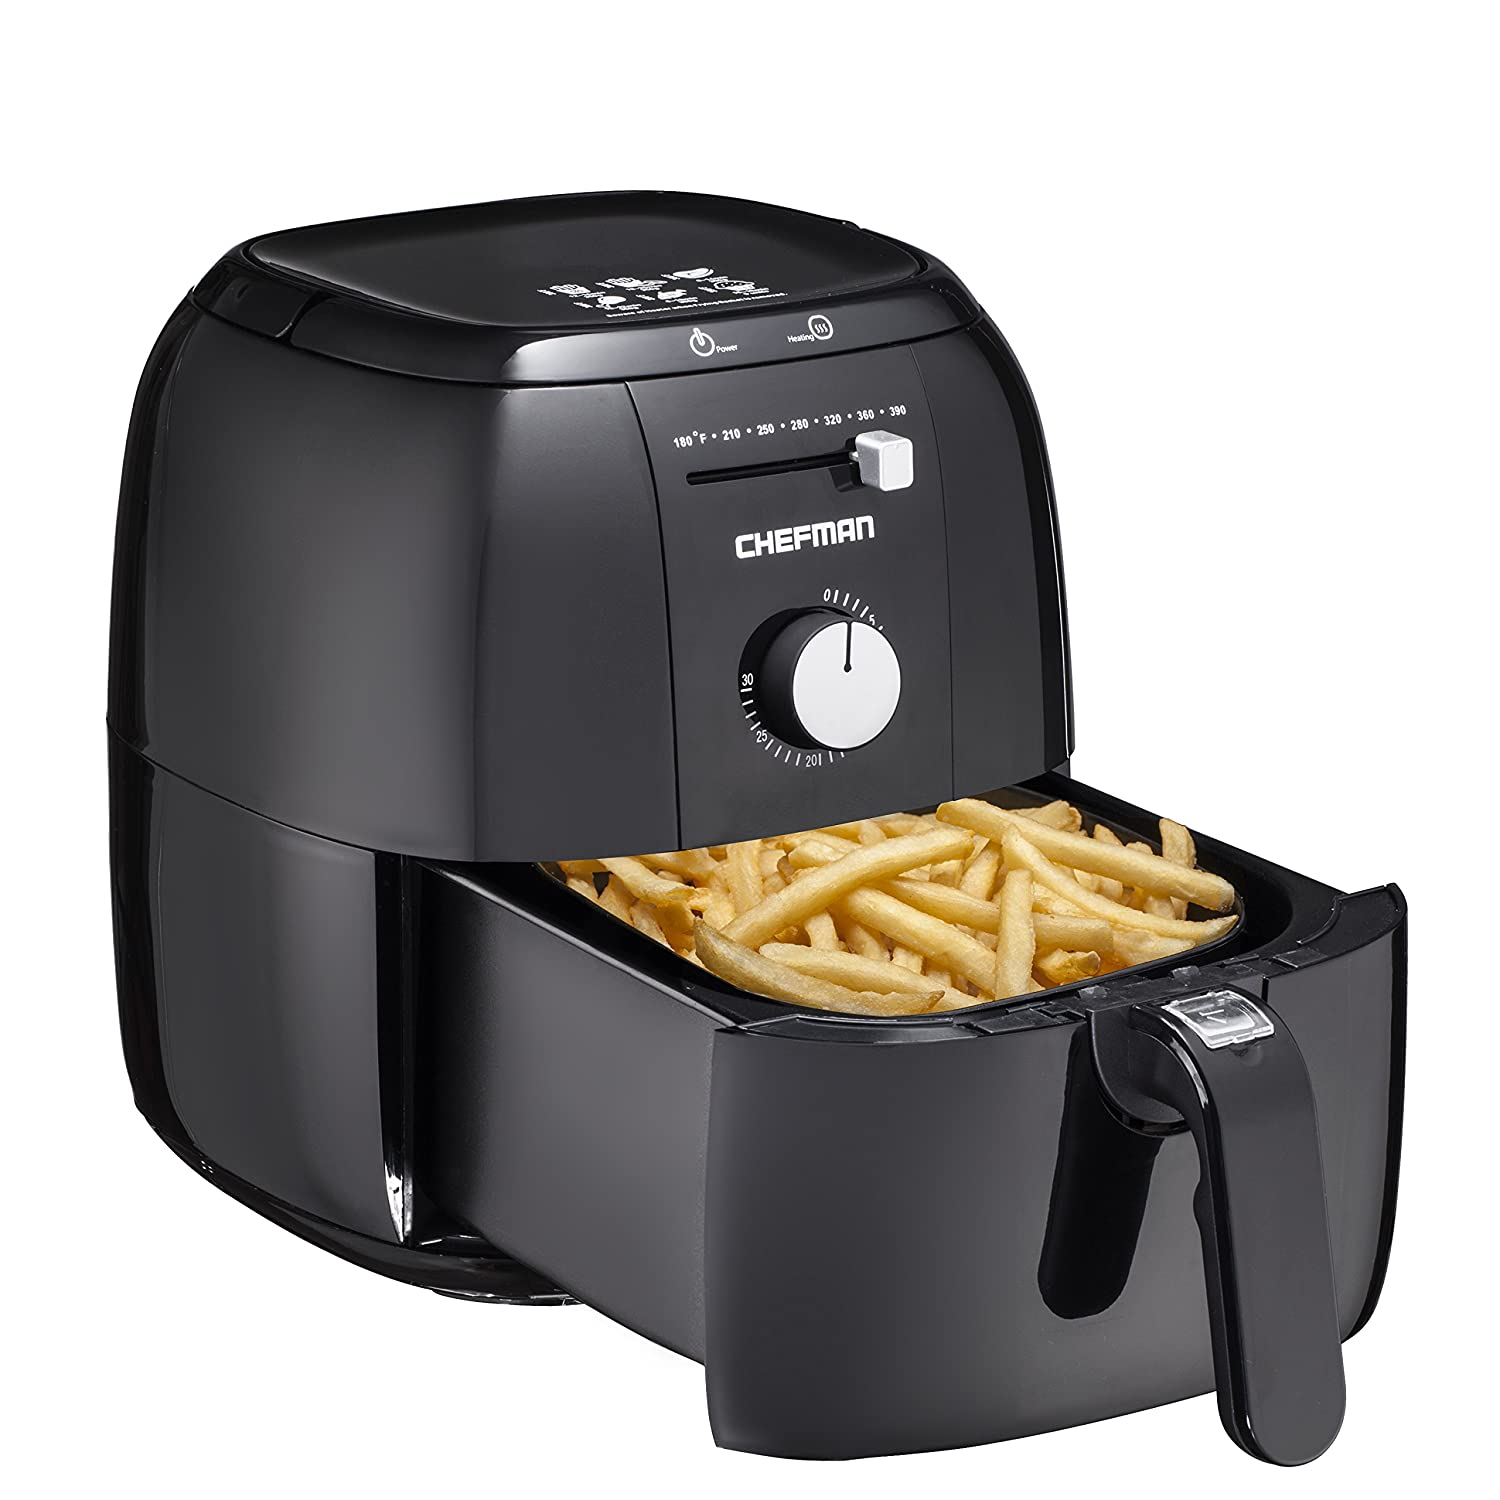 chefman air fryer reviews rj38 air fryer bestairfryerhub. Black Bedroom Furniture Sets. Home Design Ideas